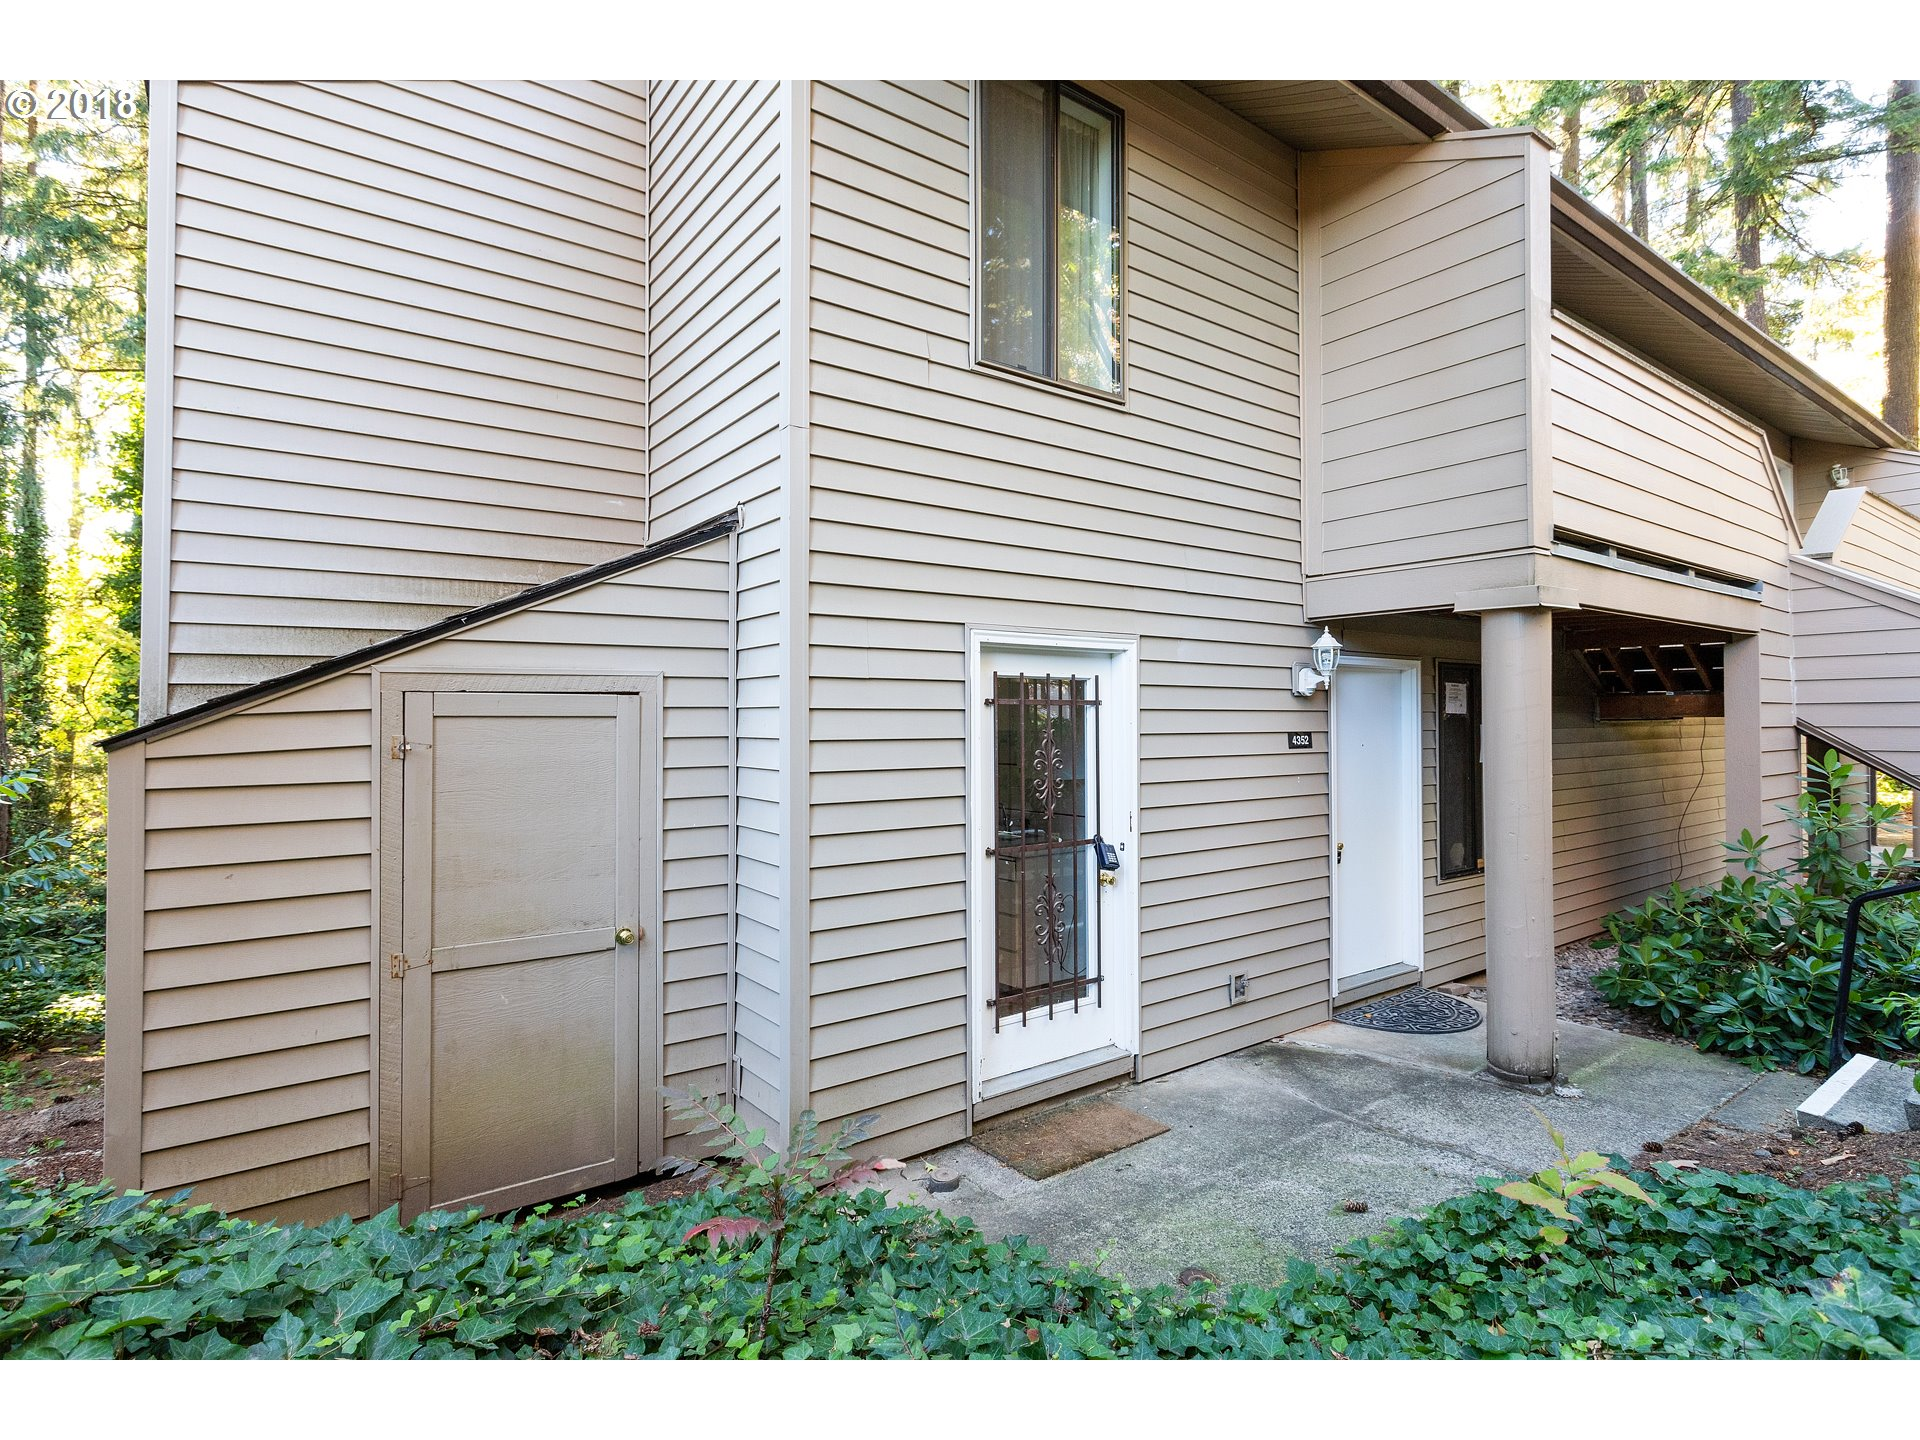 921 sq. ft 2 bedrooms 1 bathrooms  House , Portland, OR